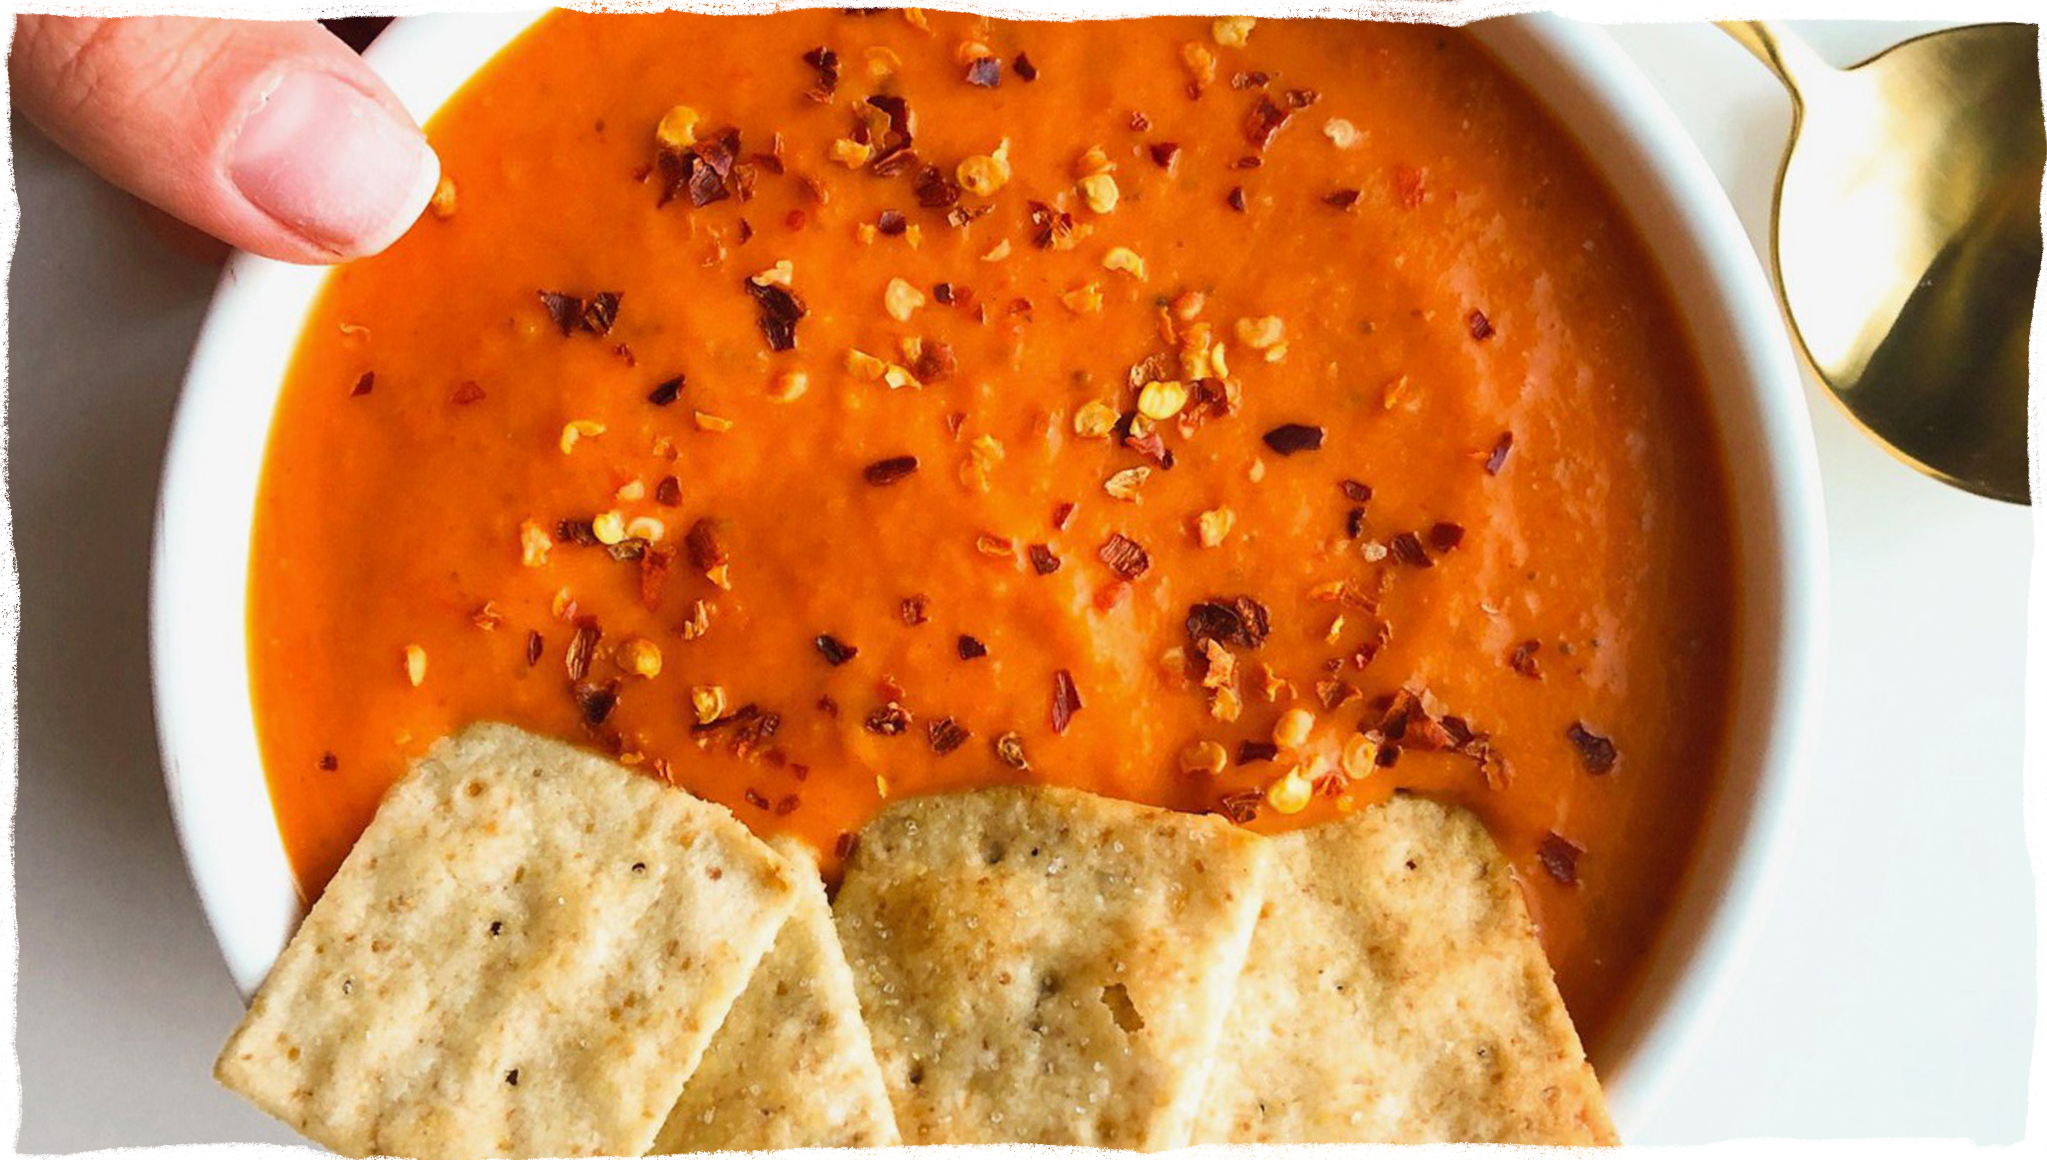 Spicy Red Pepper & Sweet Potato Soup - A fresh look at veggies - Sari D., Eat Well With Sari